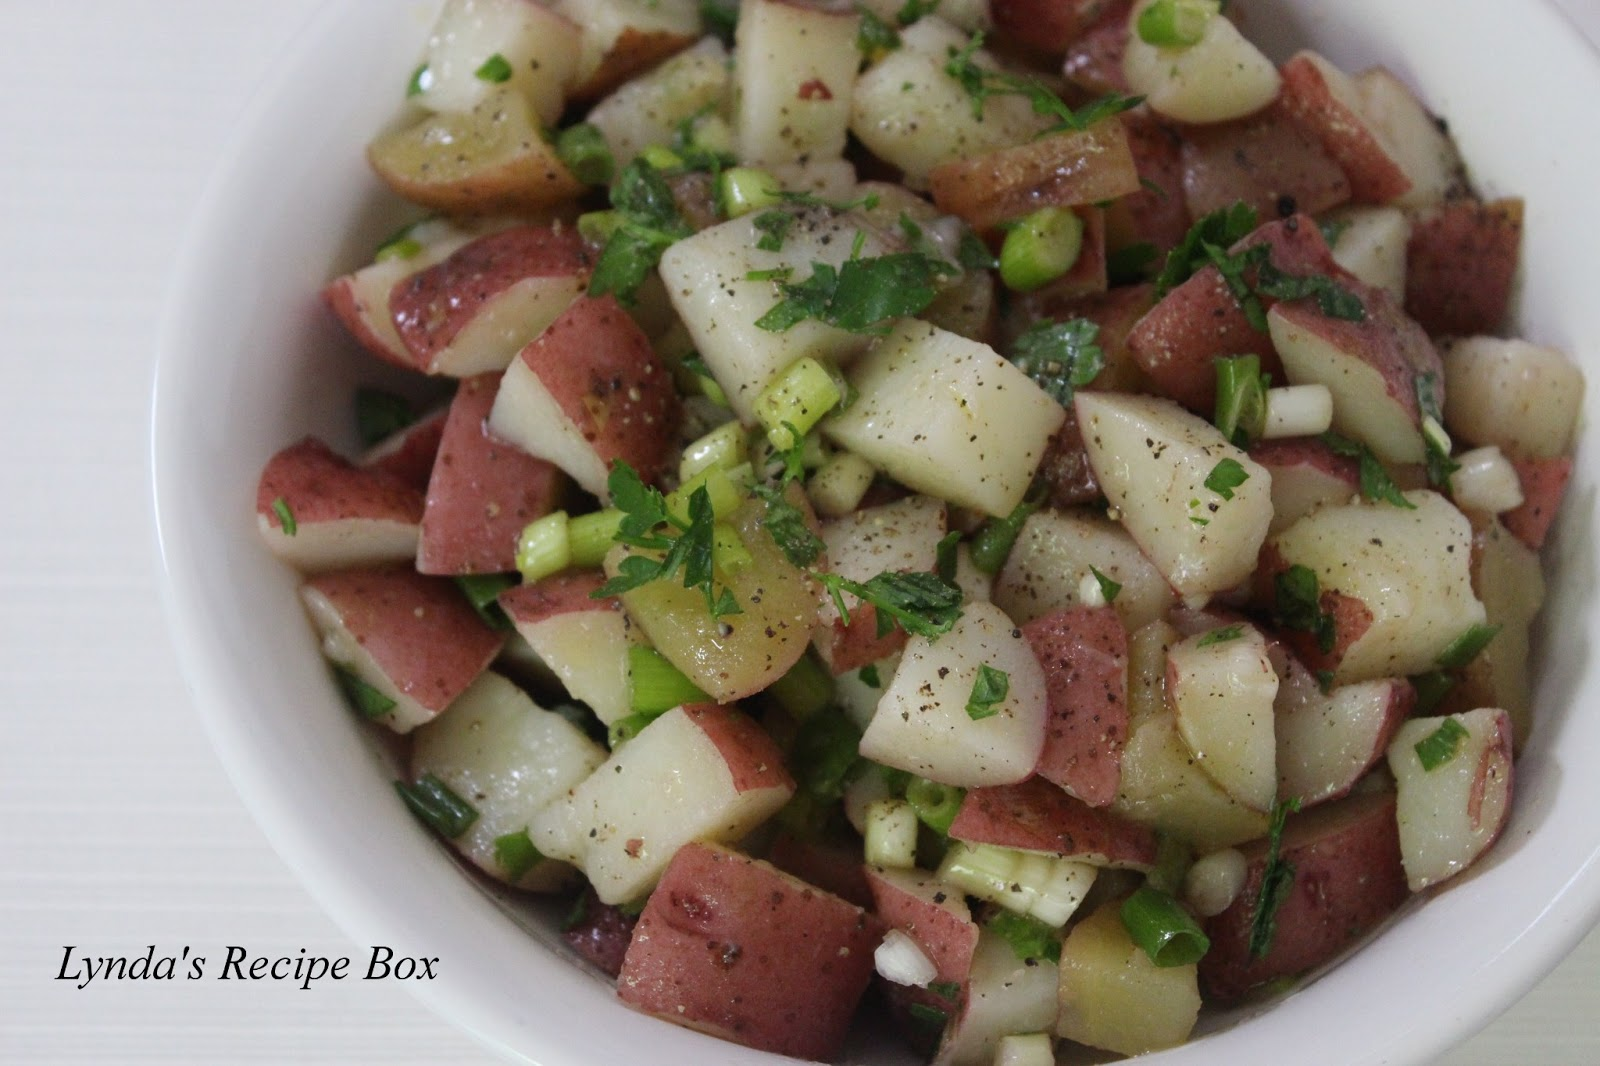 ... Recipe Box: I'm Back with an Oil and Vinegar Potato Salad Recipe